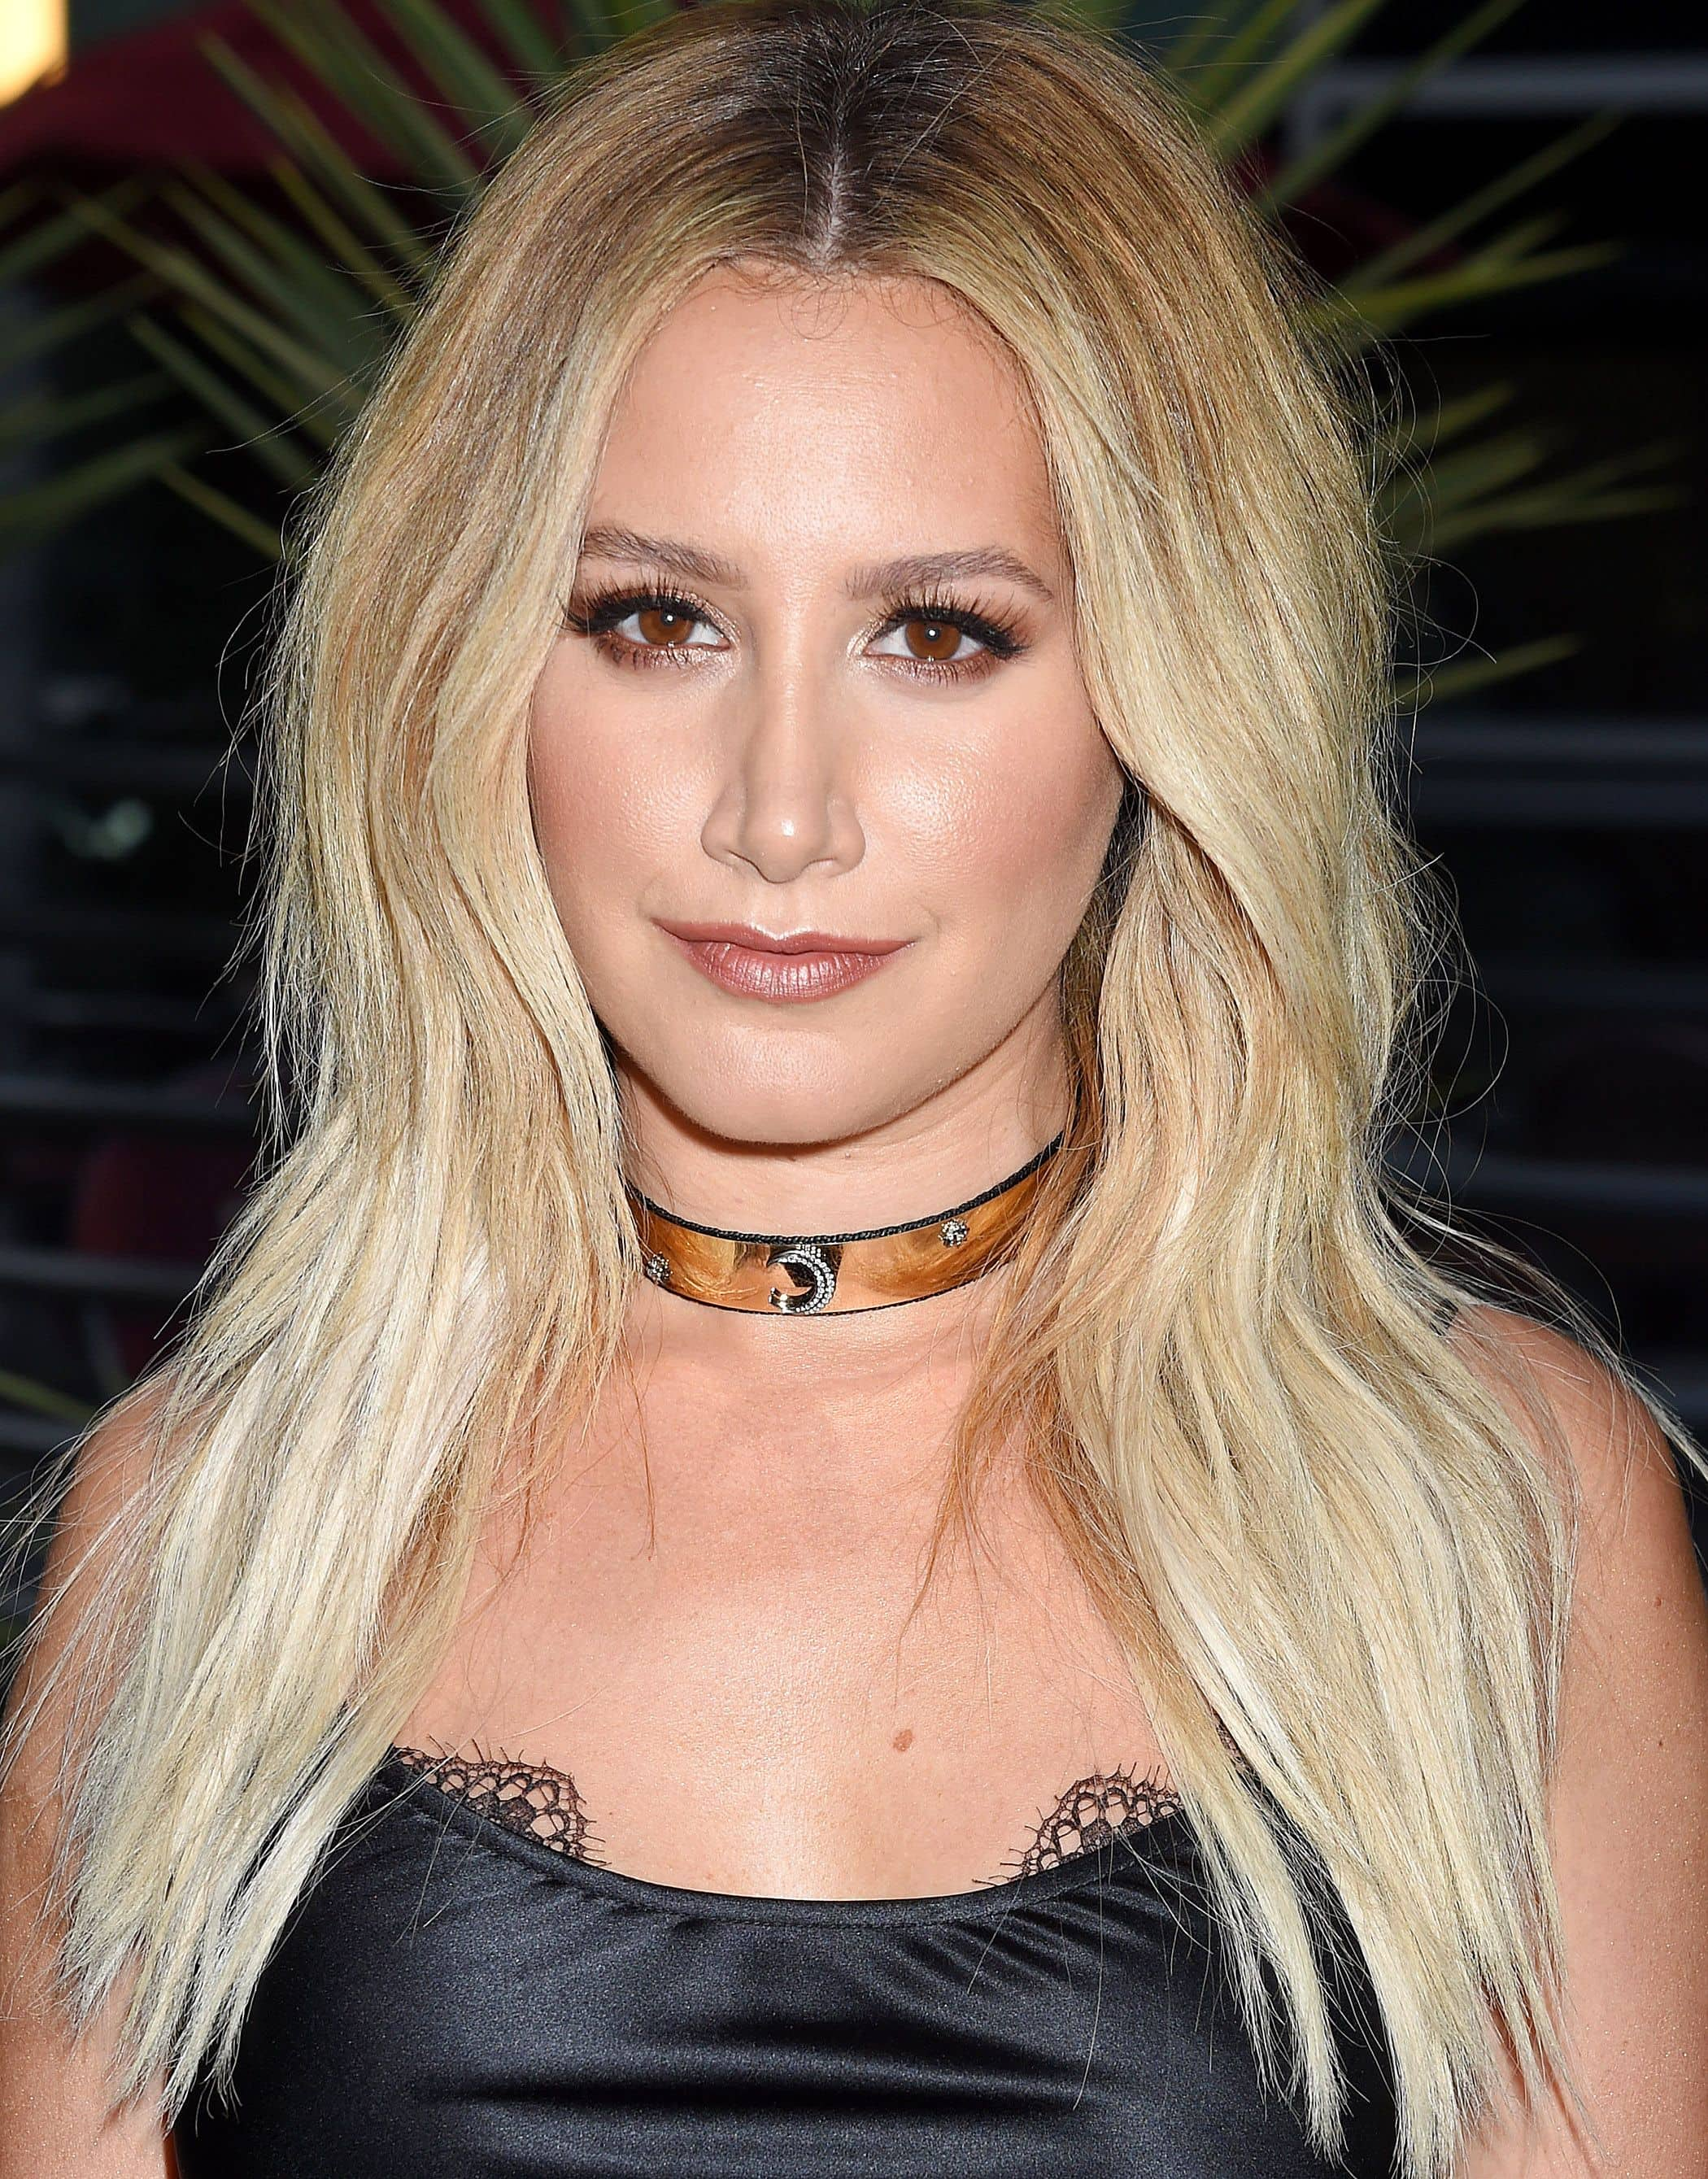 2017 hairstyles: All Things Hair - IMAGE - Ashley Tisdale blonde textured layered hair